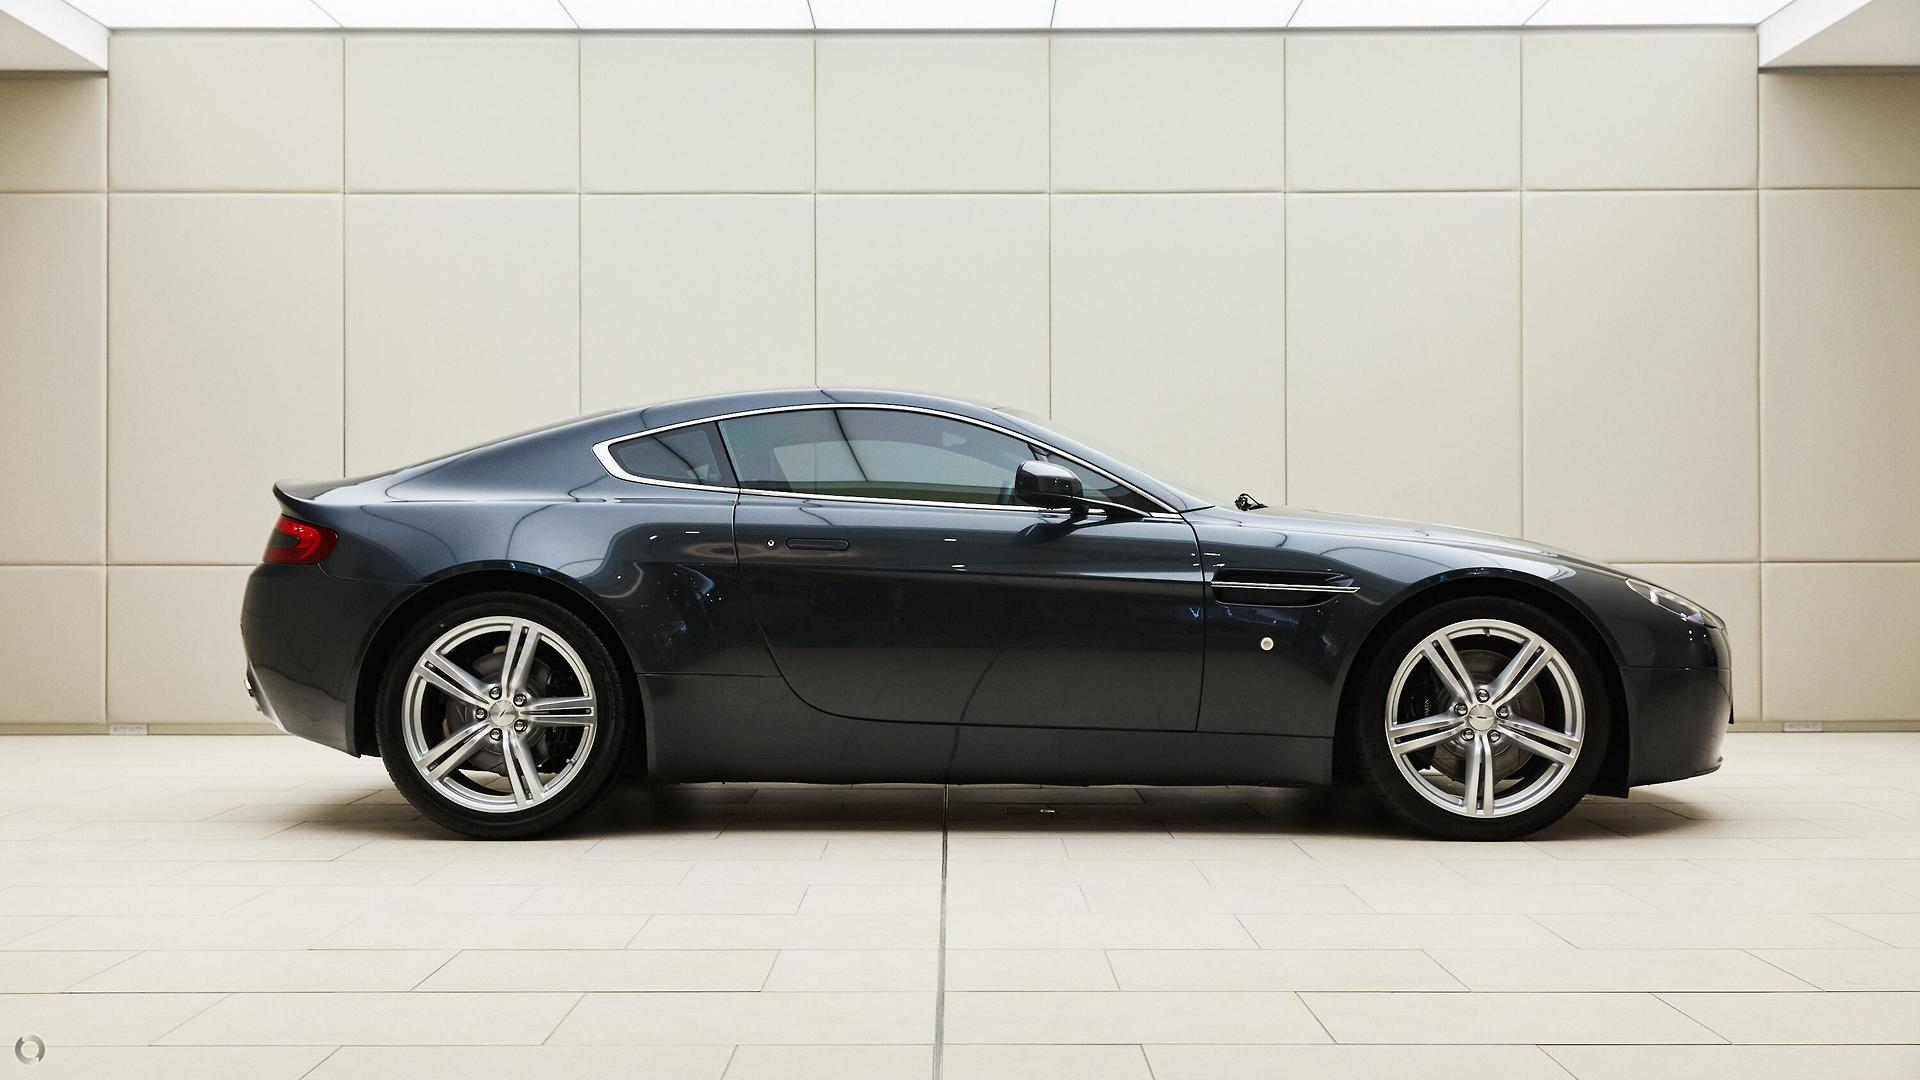 2009 Aston Martin V8 (No Series)